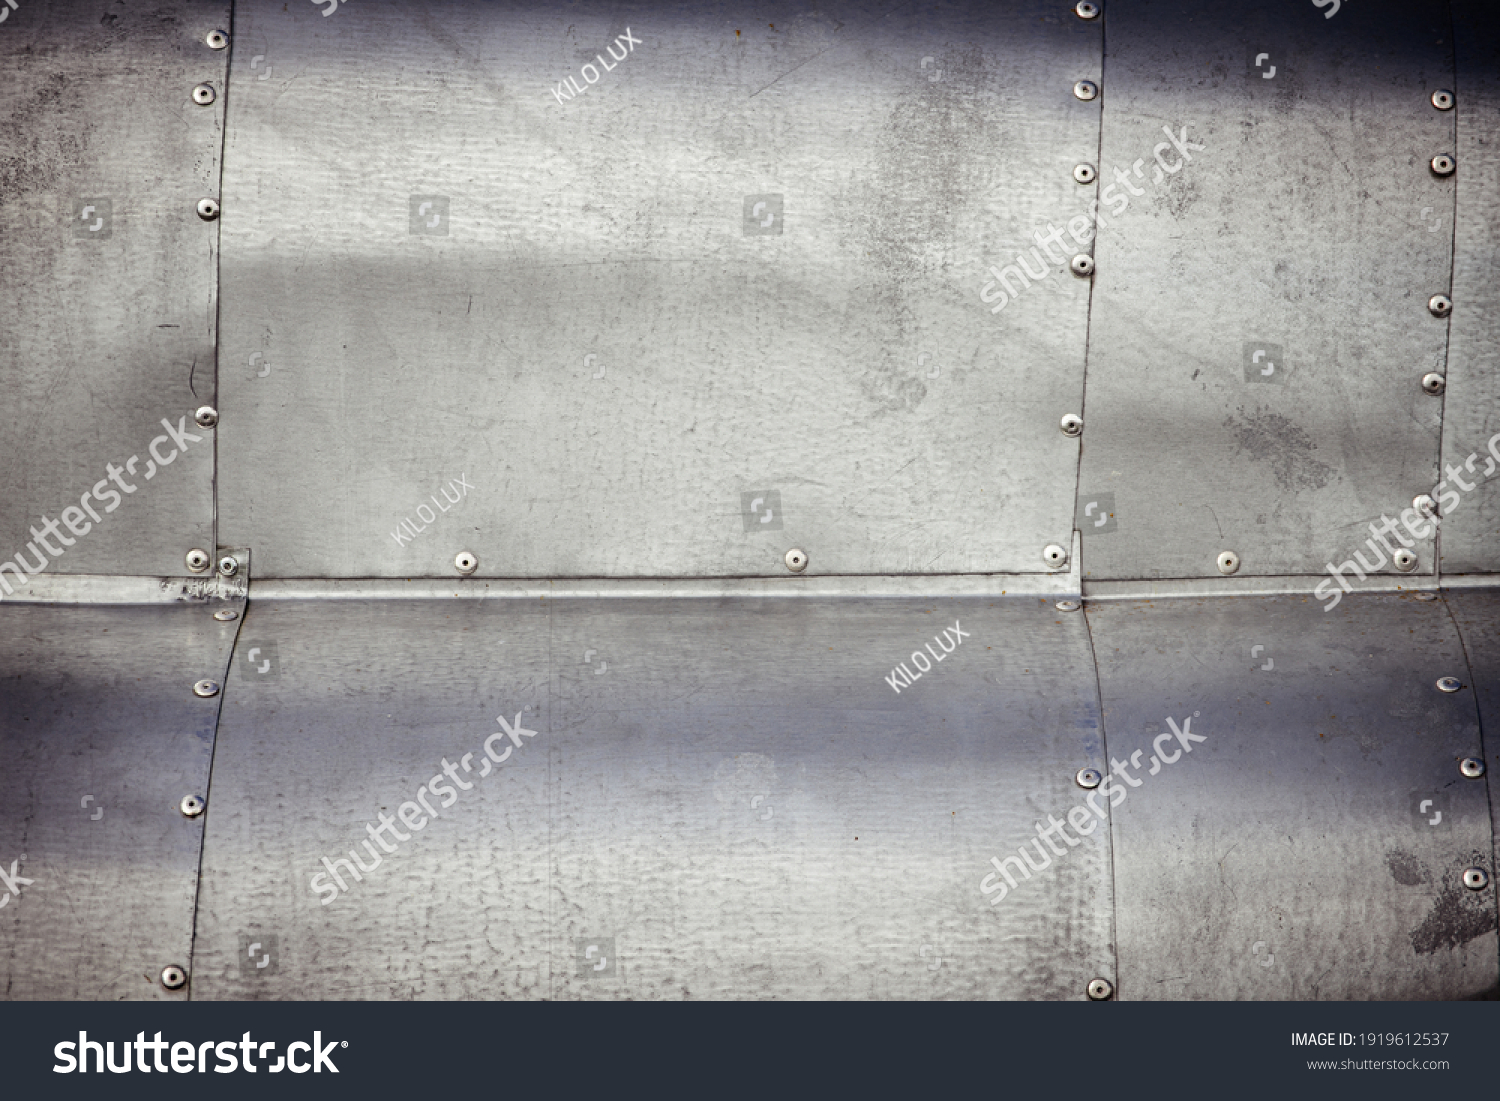 Riveted, sheet metal, waved, weathered surface abstract background image. #1919612537